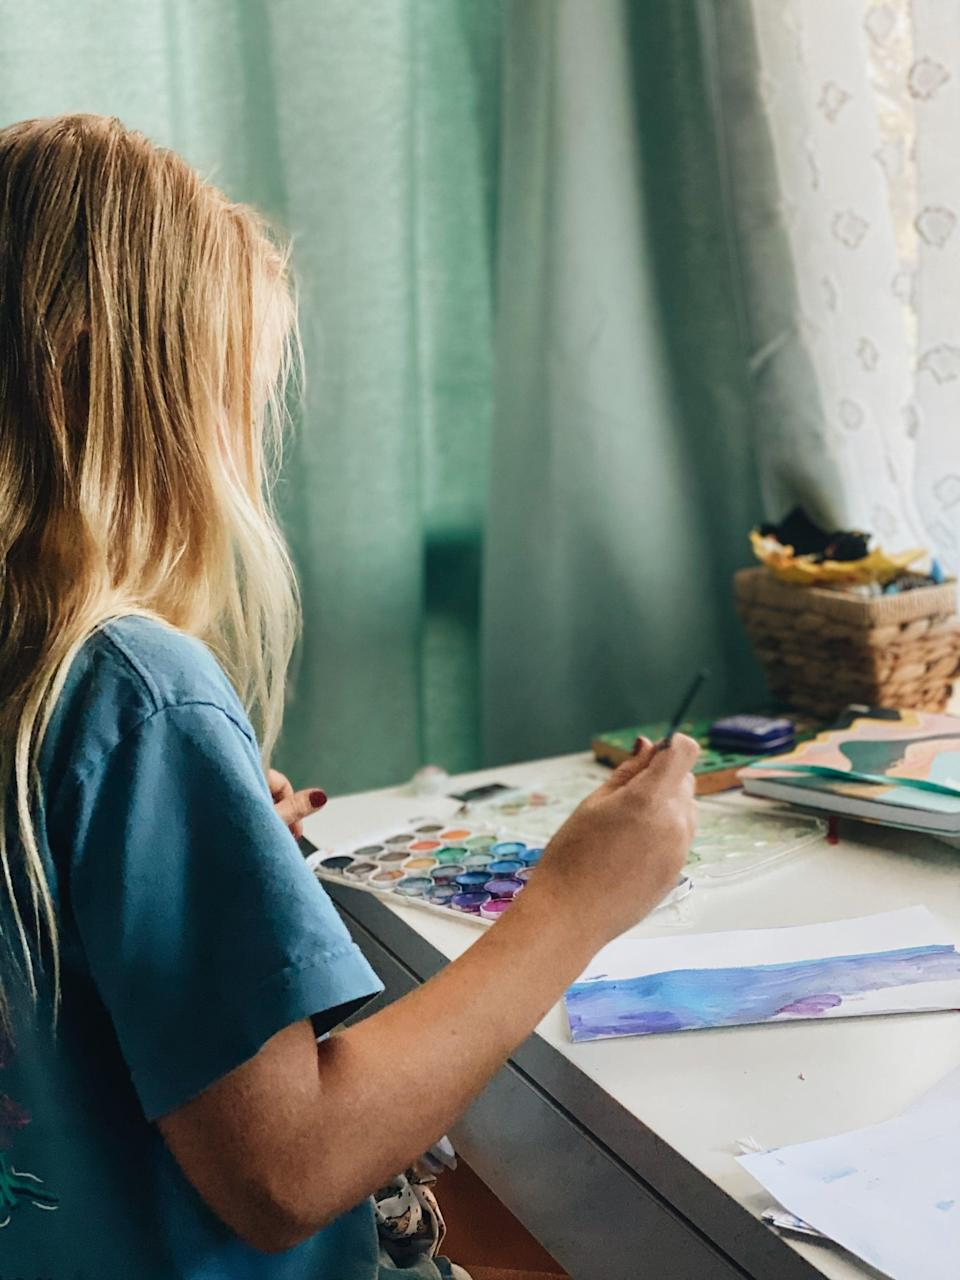 """<p>Sometimes, you just need a space to let loose and get creative. Even if you're not a certified artist, art-based activities like painting, expressive writing, and dance have been <a href=""""http://www.ncbi.nlm.nih.gov/pmc/articles/PMC2804629/"""" class=""""link rapid-noclick-resp"""" rel=""""nofollow noopener"""" target=""""_blank"""" data-ylk=""""slk:proven to have positive effects on mental health"""">proven to have positive effects on mental health</a>.</p>"""